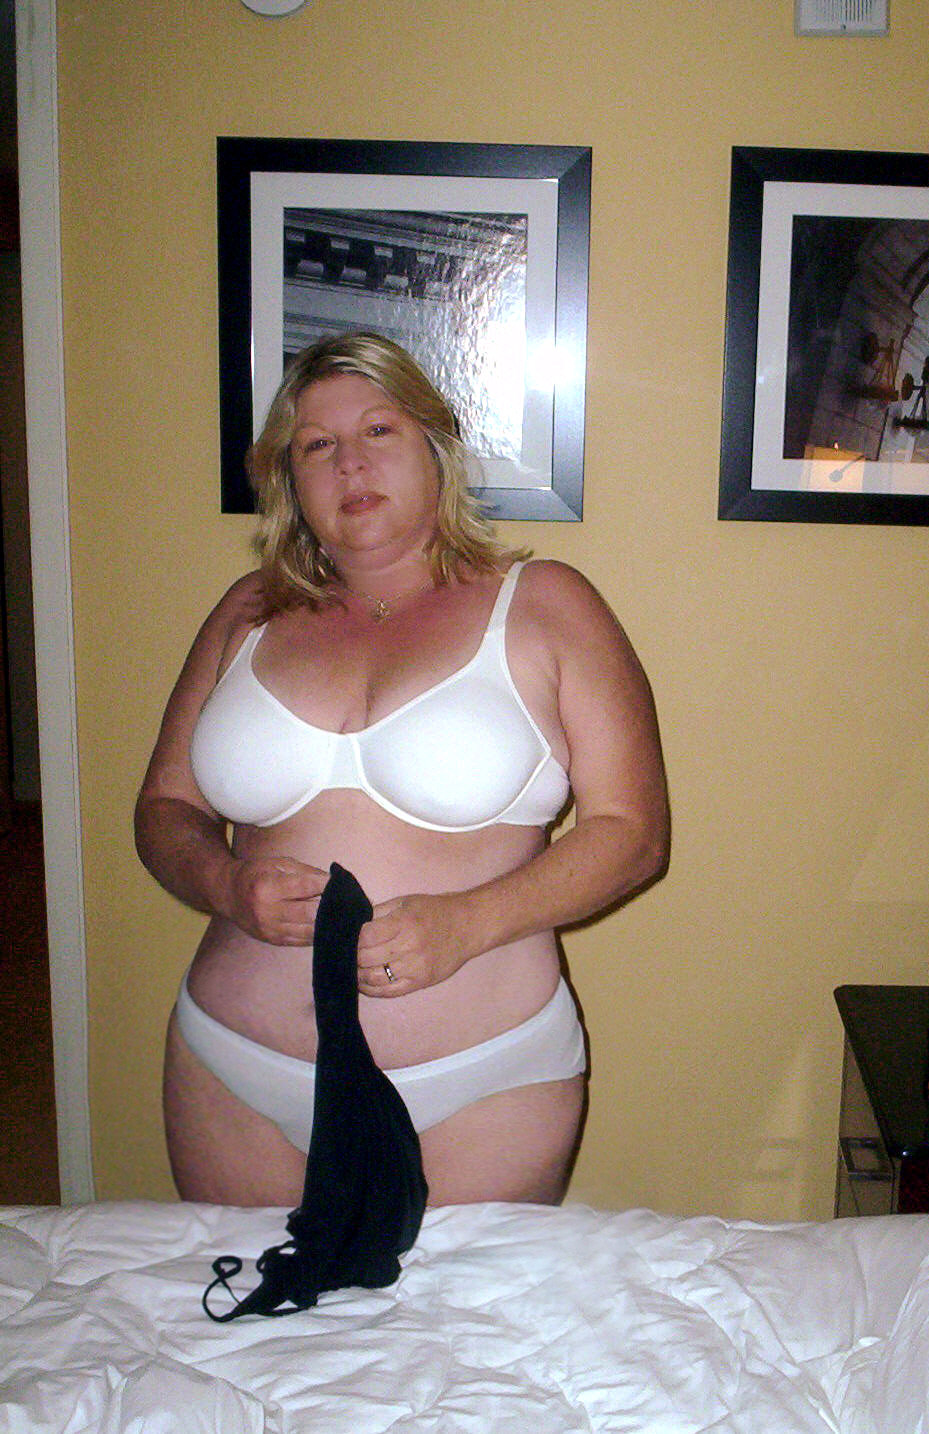 And chubby panties bra